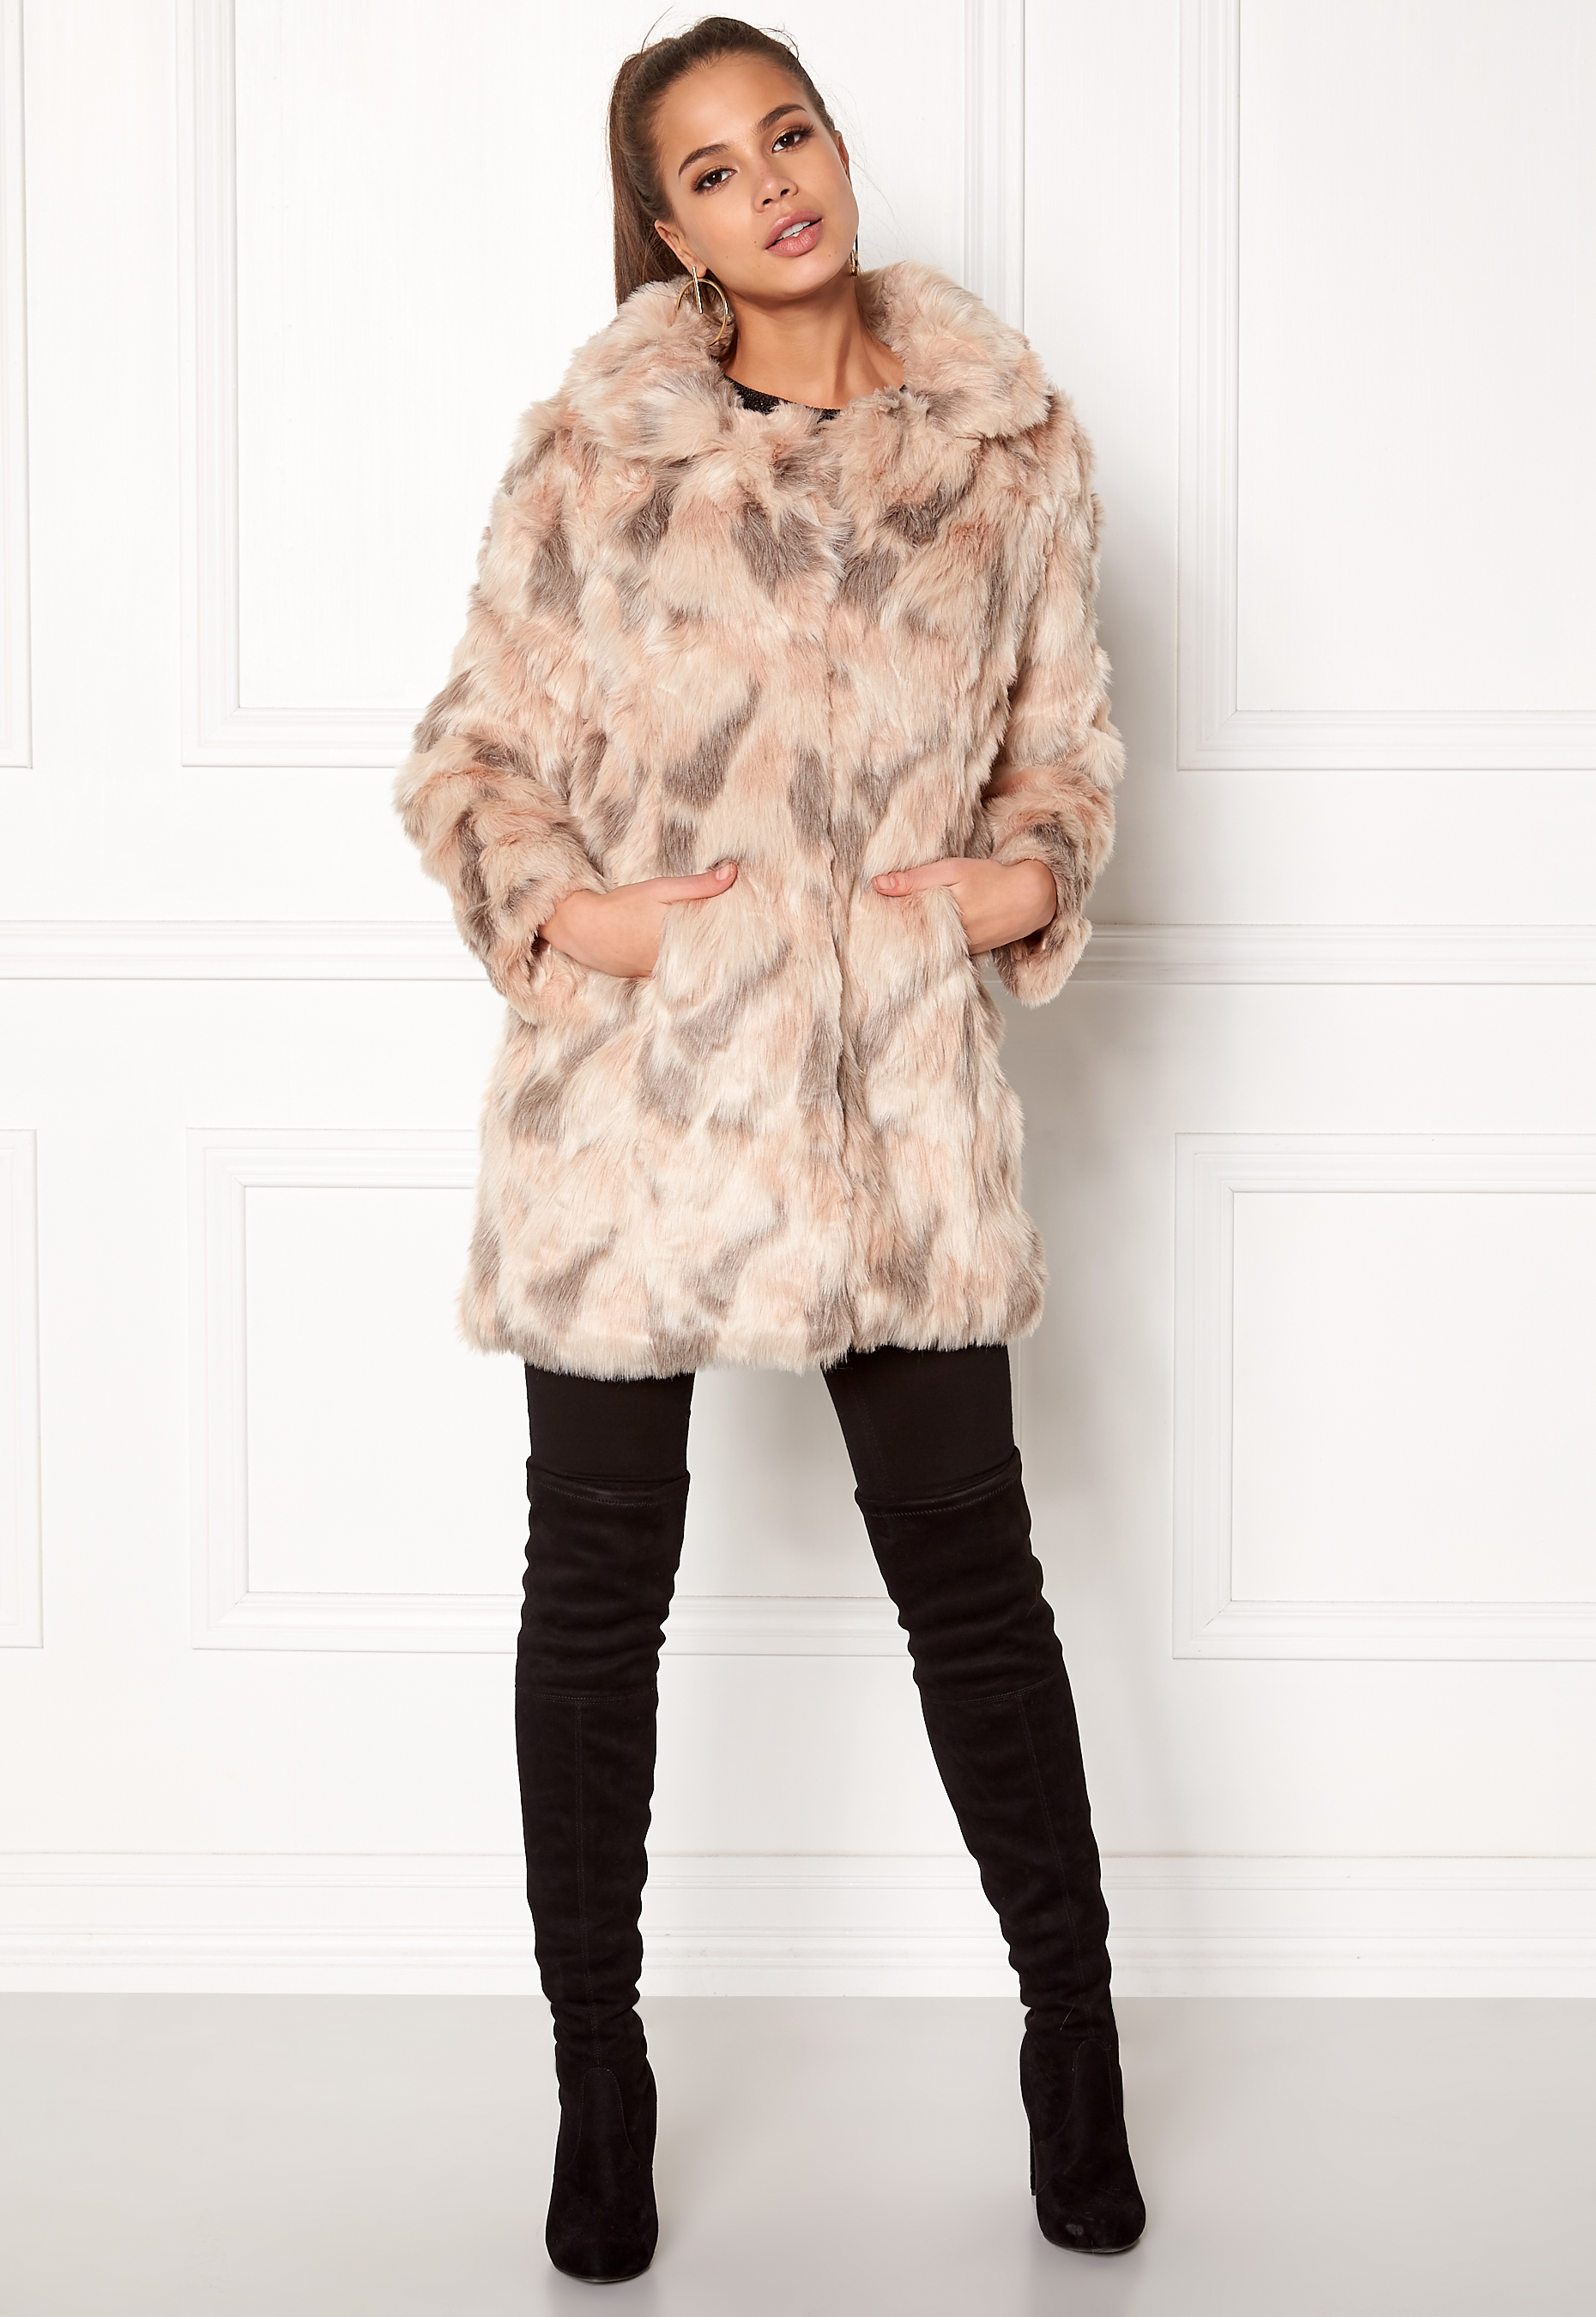 931671e27 QED London Abstract Faux Fur Coat Abstract Blush - Bubbleroom